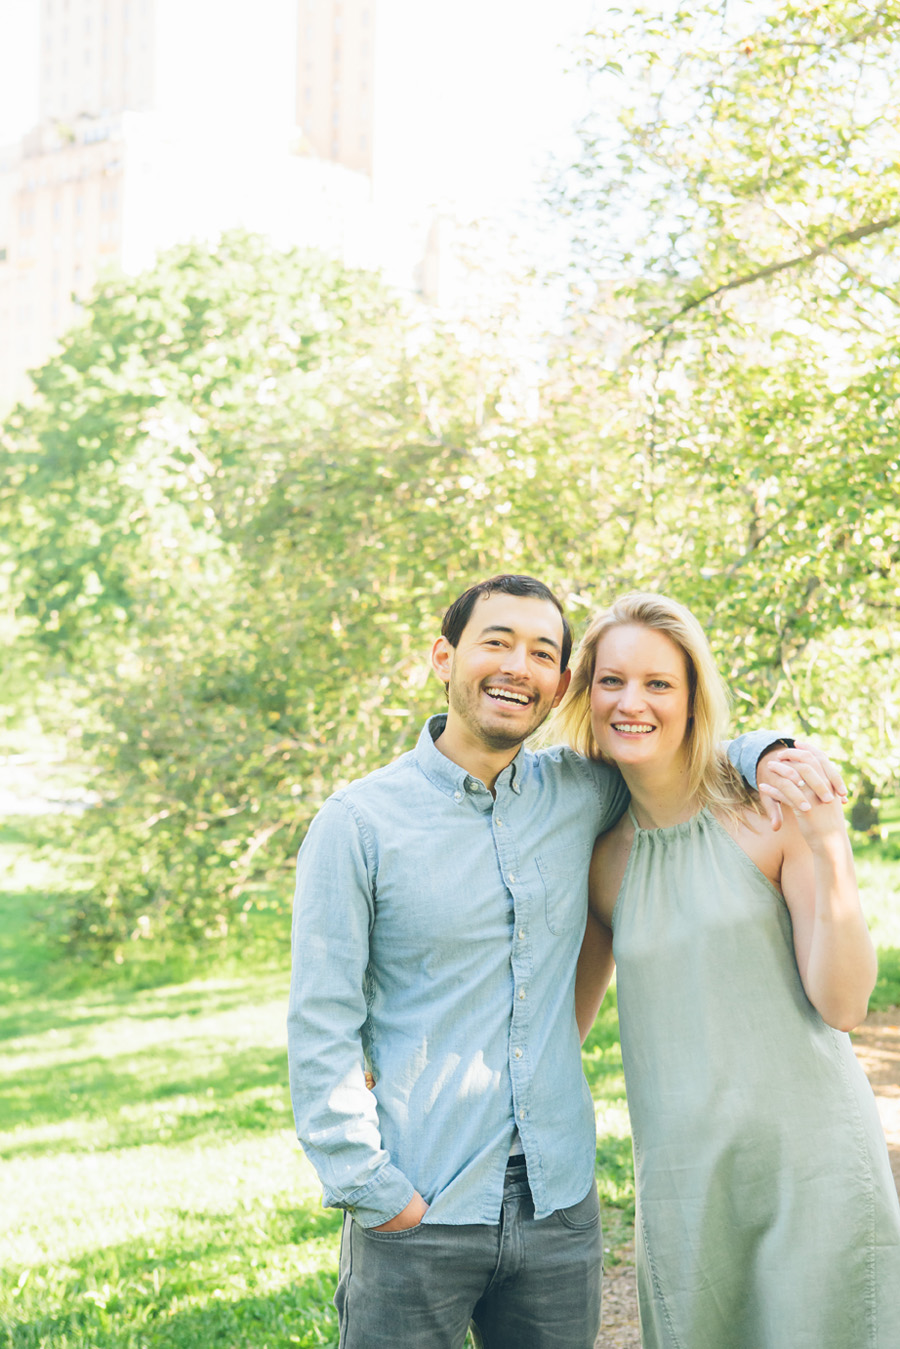 CLAUDIA-BRENDAN-UPPERWESTSIDE-CENTRALPARK-ENGAGEMENT-SESSION-BLOG-CYNTHIACHUNG-0008.jpg